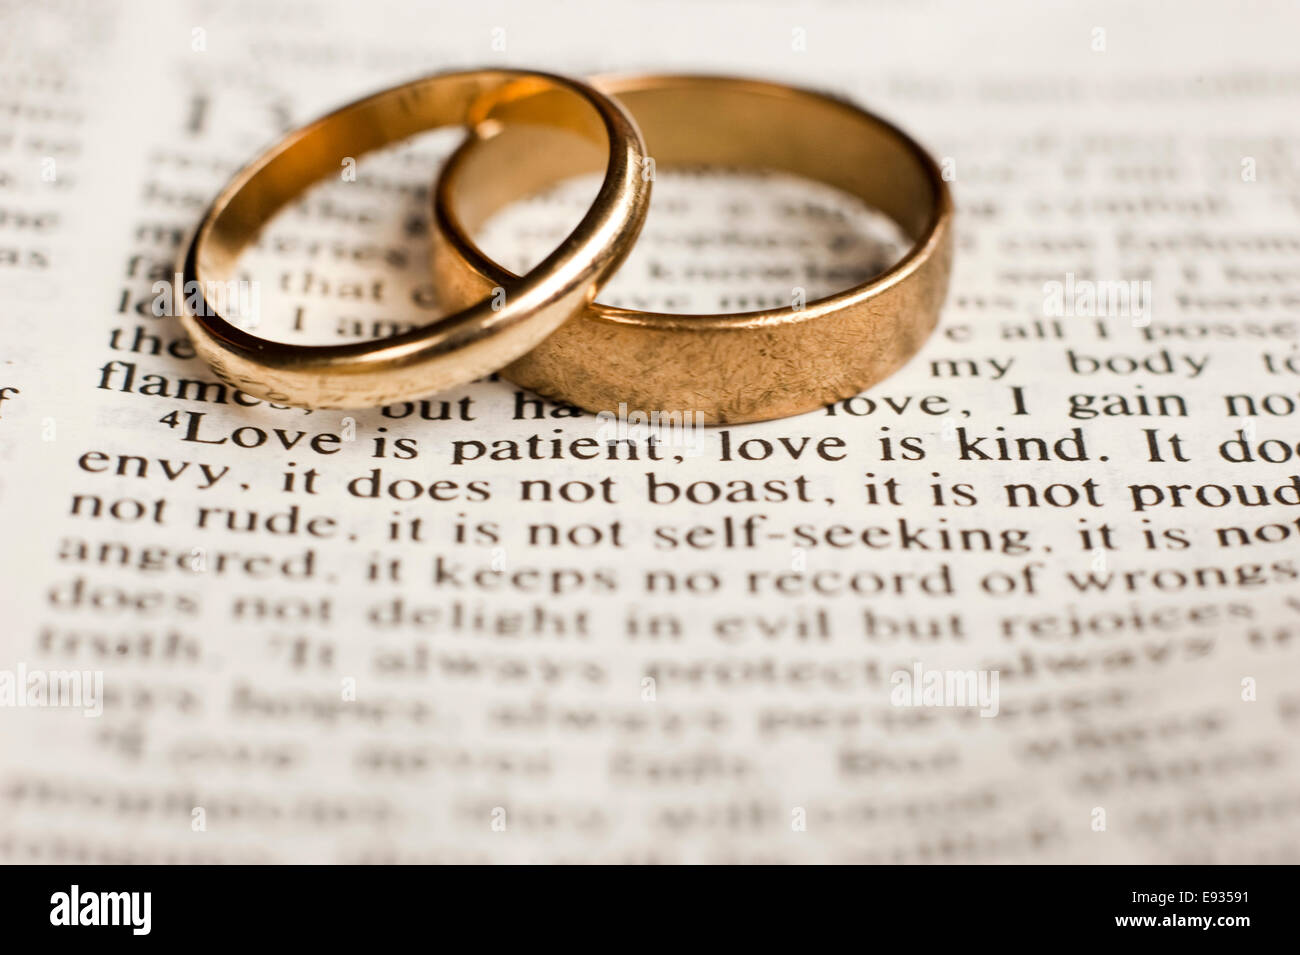 Wedding rings on bible passage on love stock photo for Wedding ring meaning bible